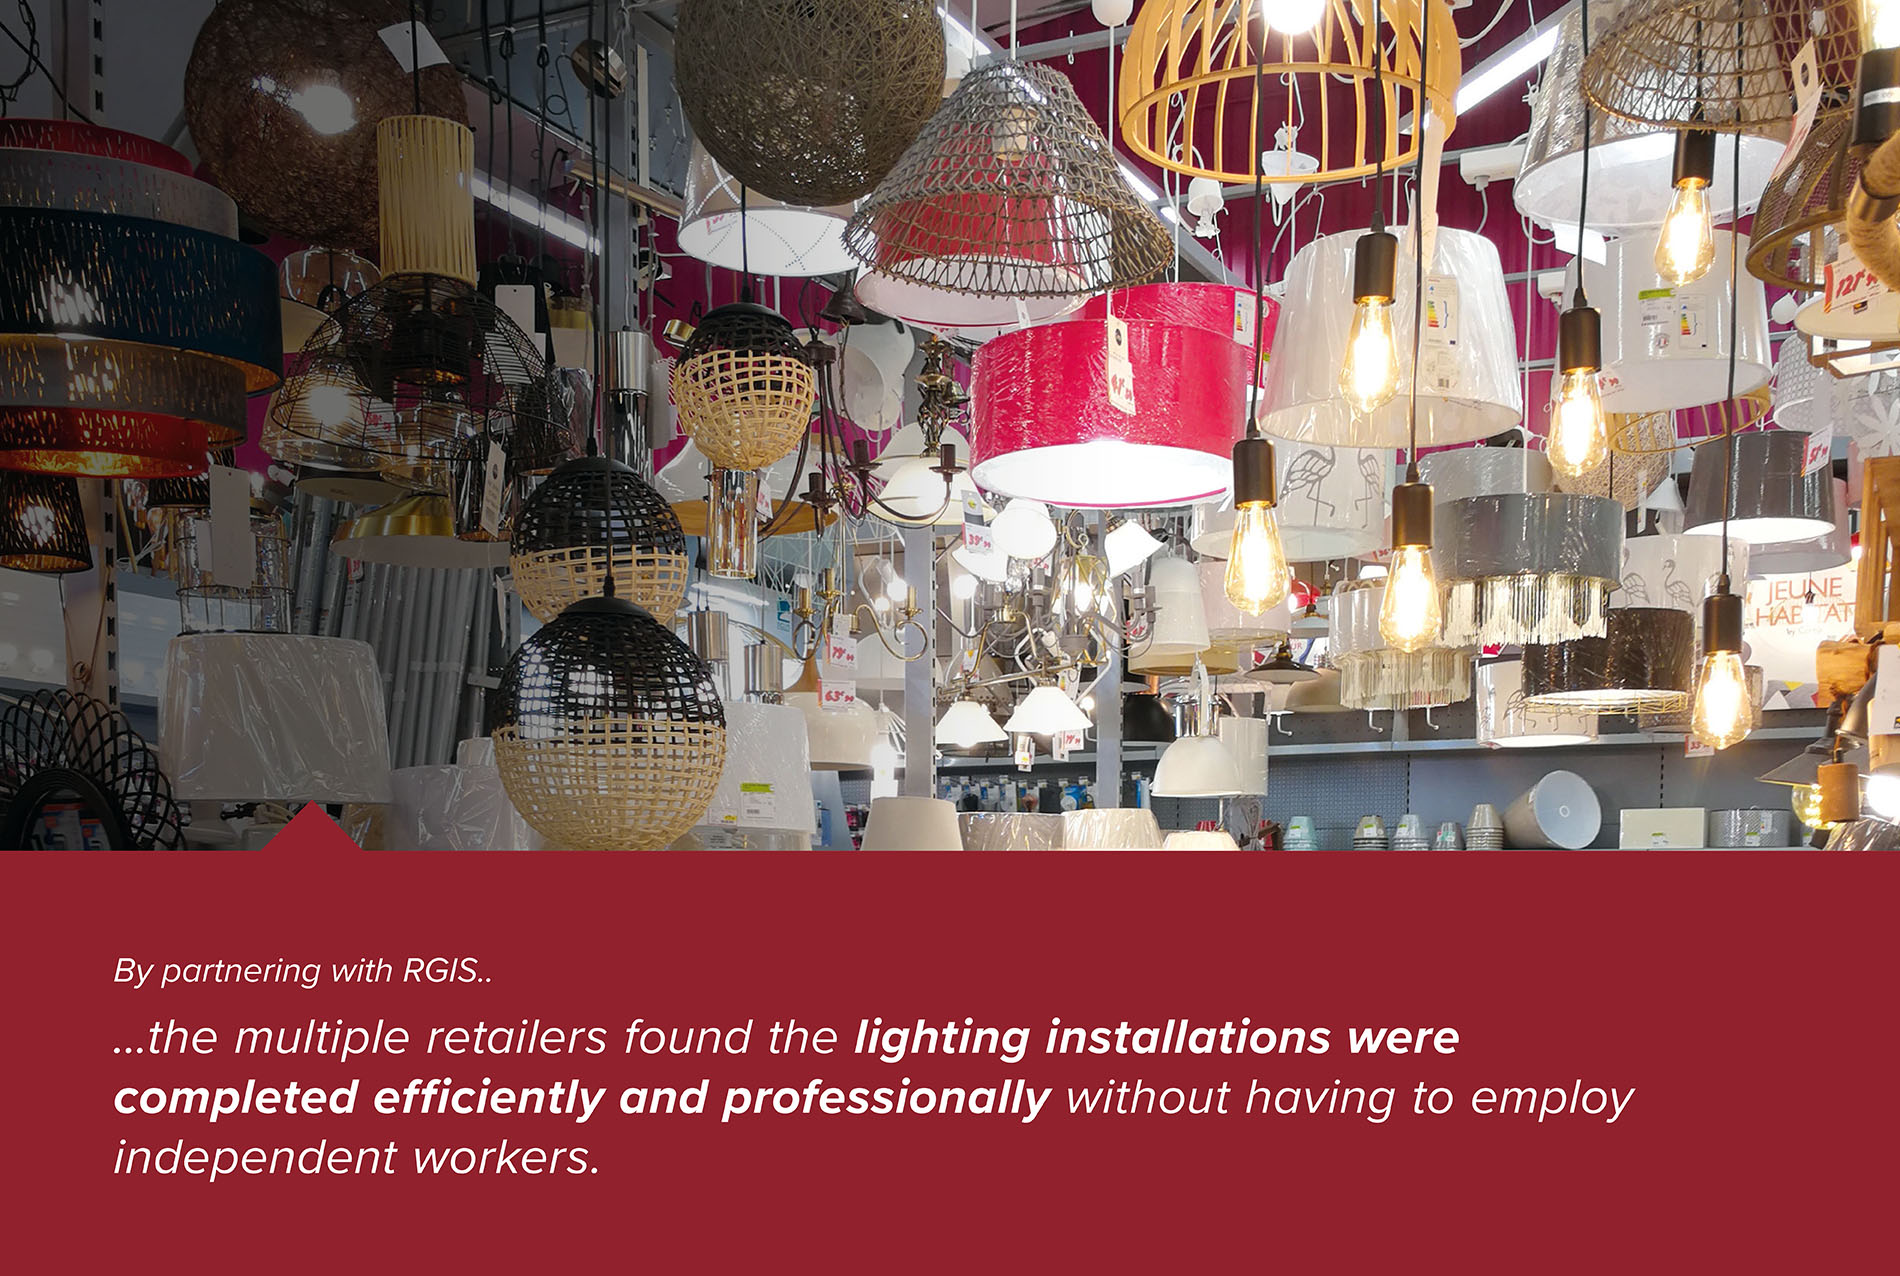 Merchandising Lighting Installations Within Multiple Retailers